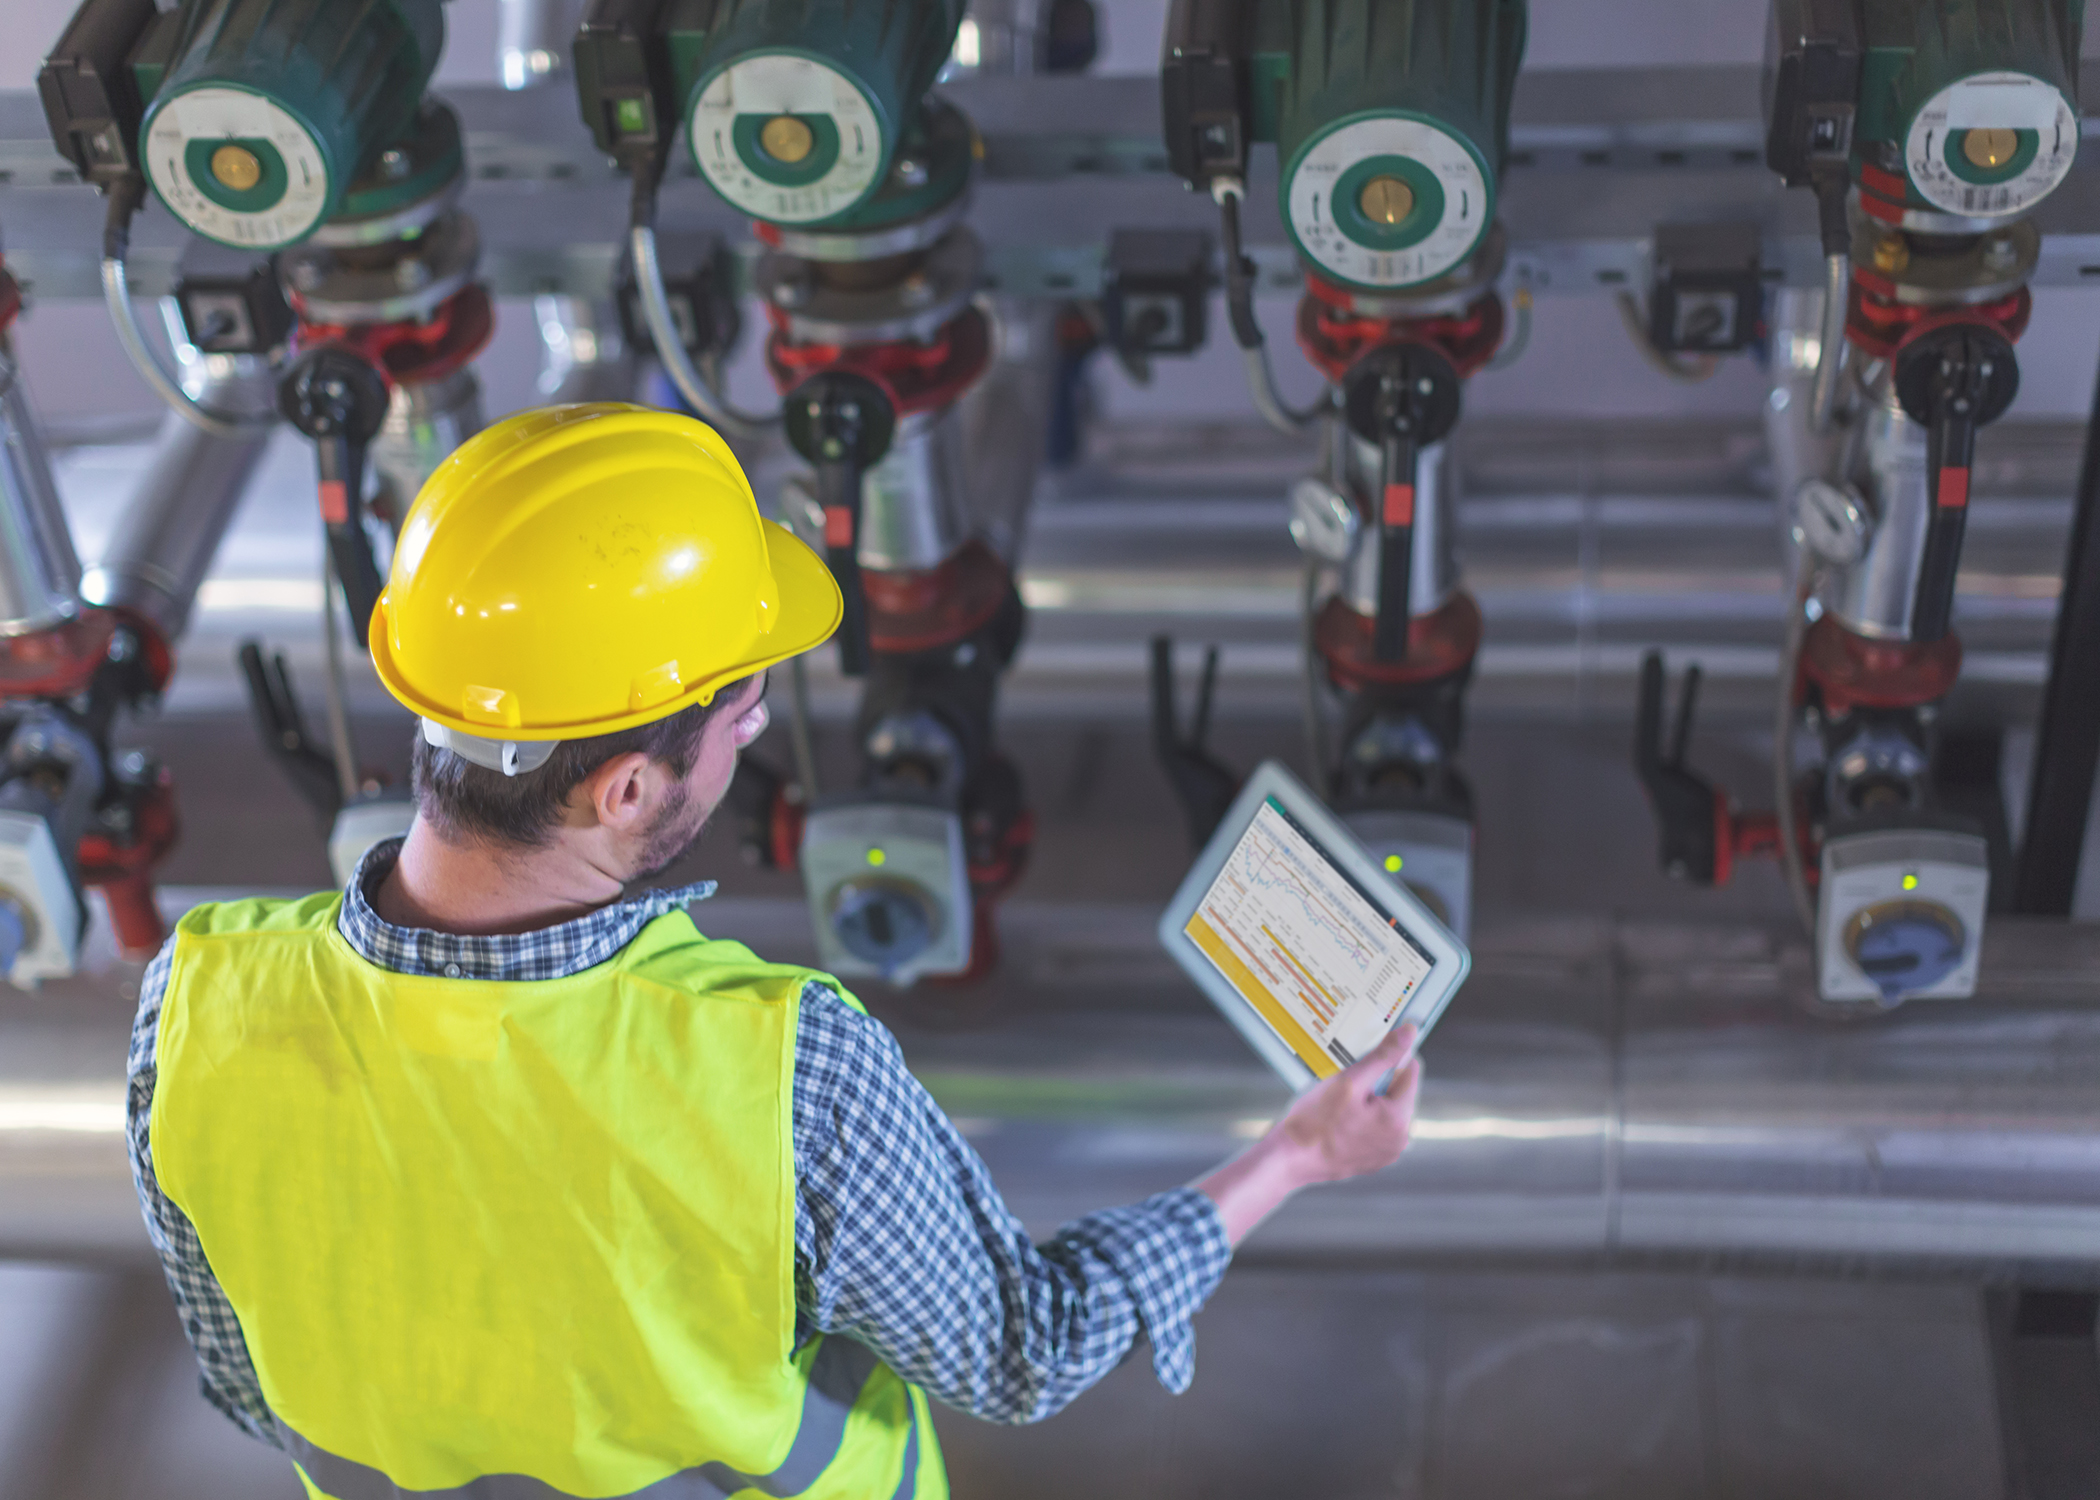 Solutions for improving operations and reducing costs